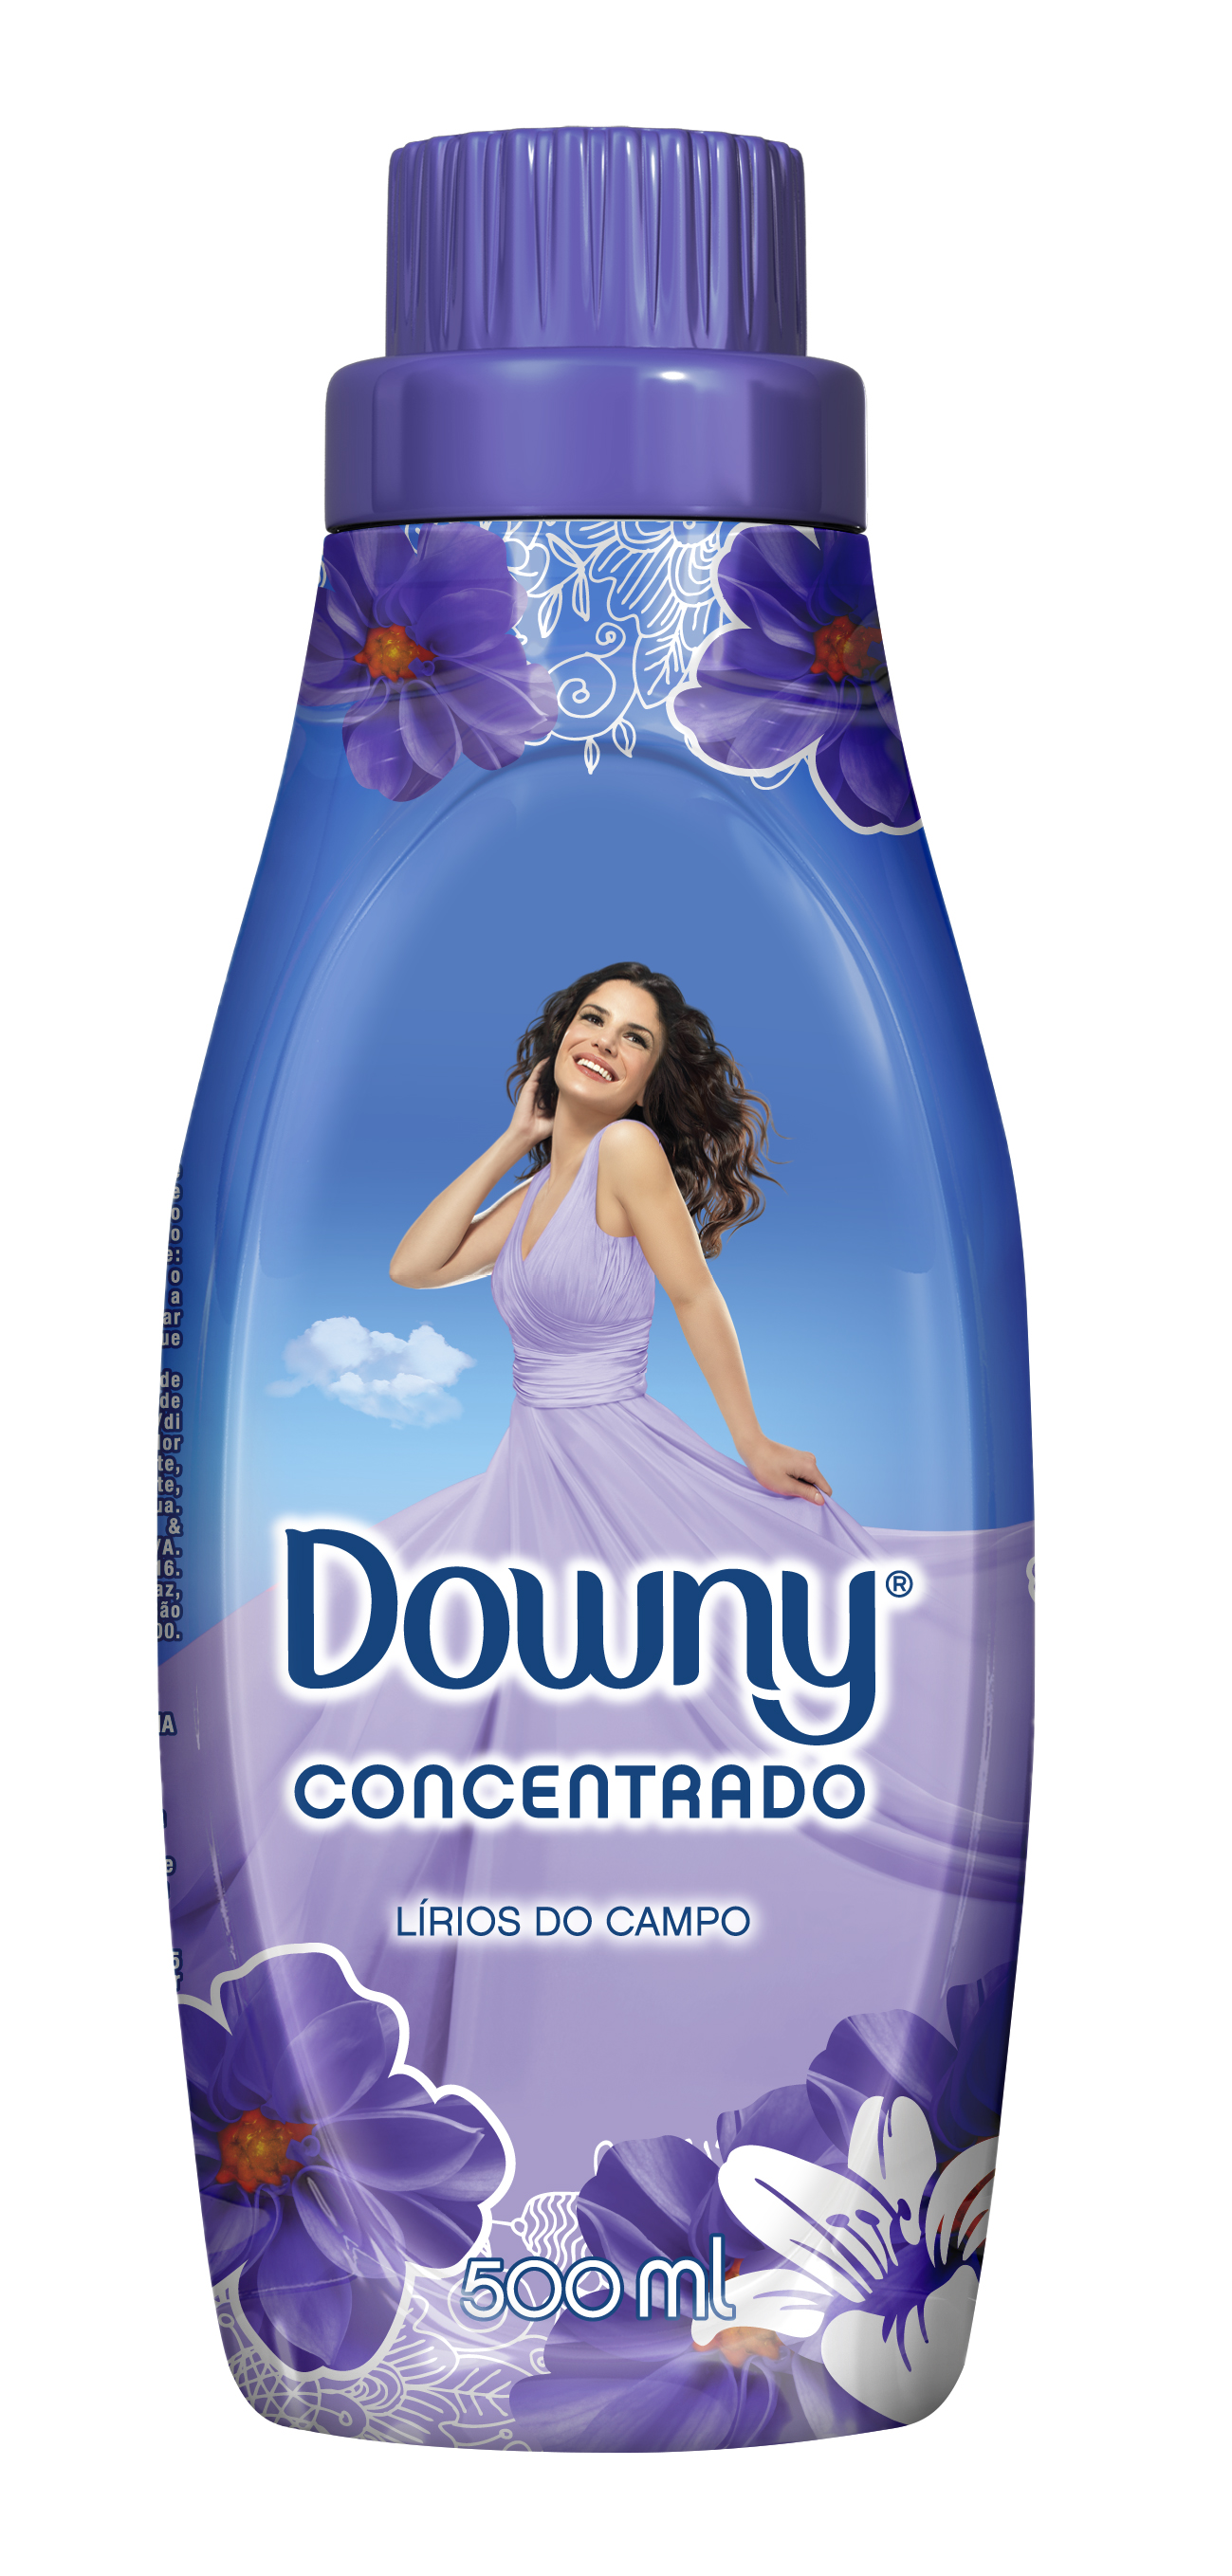 Amaciante Concentrado Downy Lírios do Campo 500ml